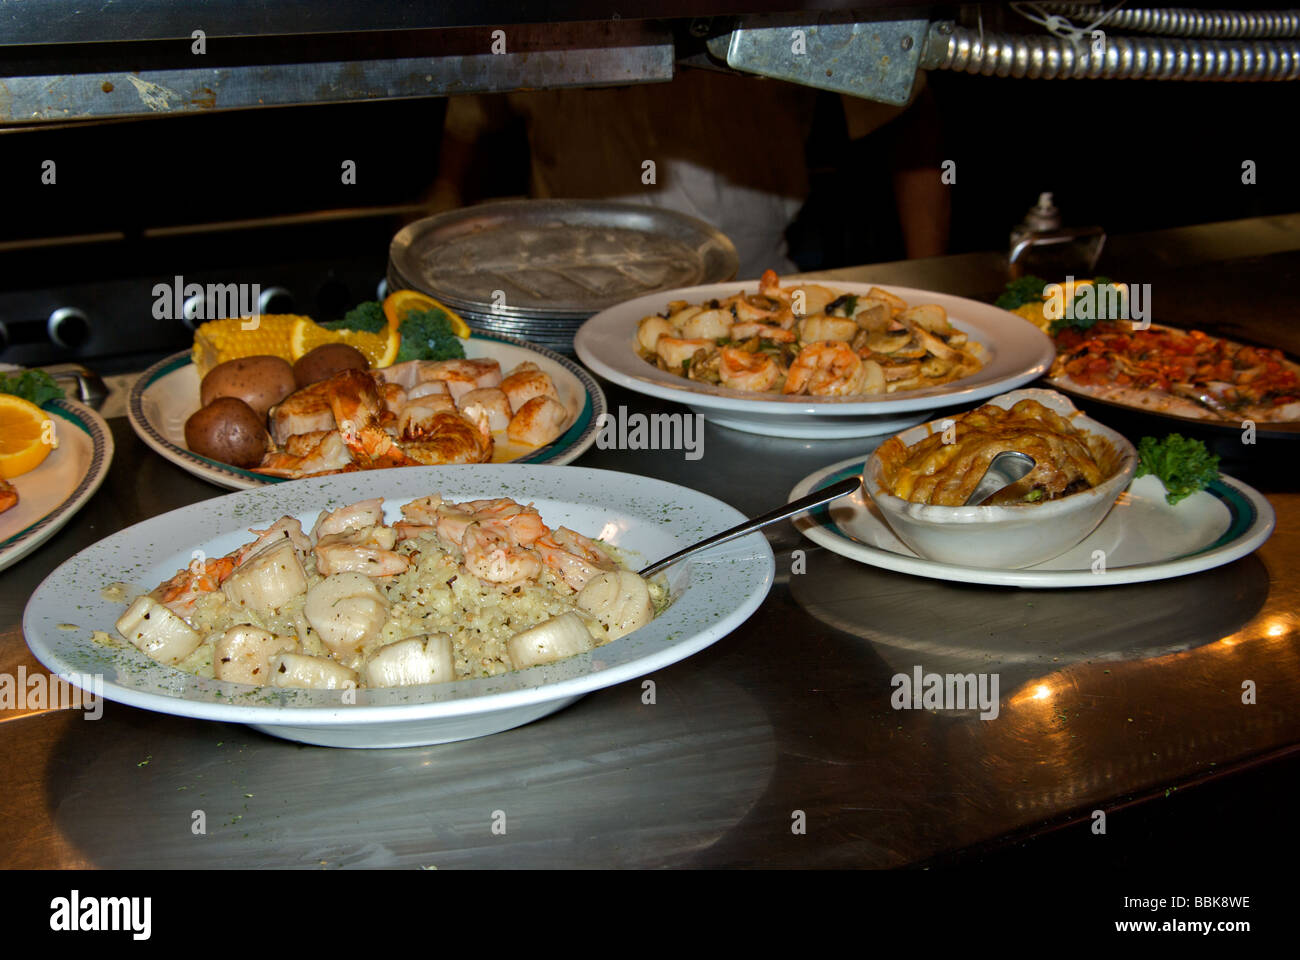 Cooked seafood entrees under warmer ready for serving at ...